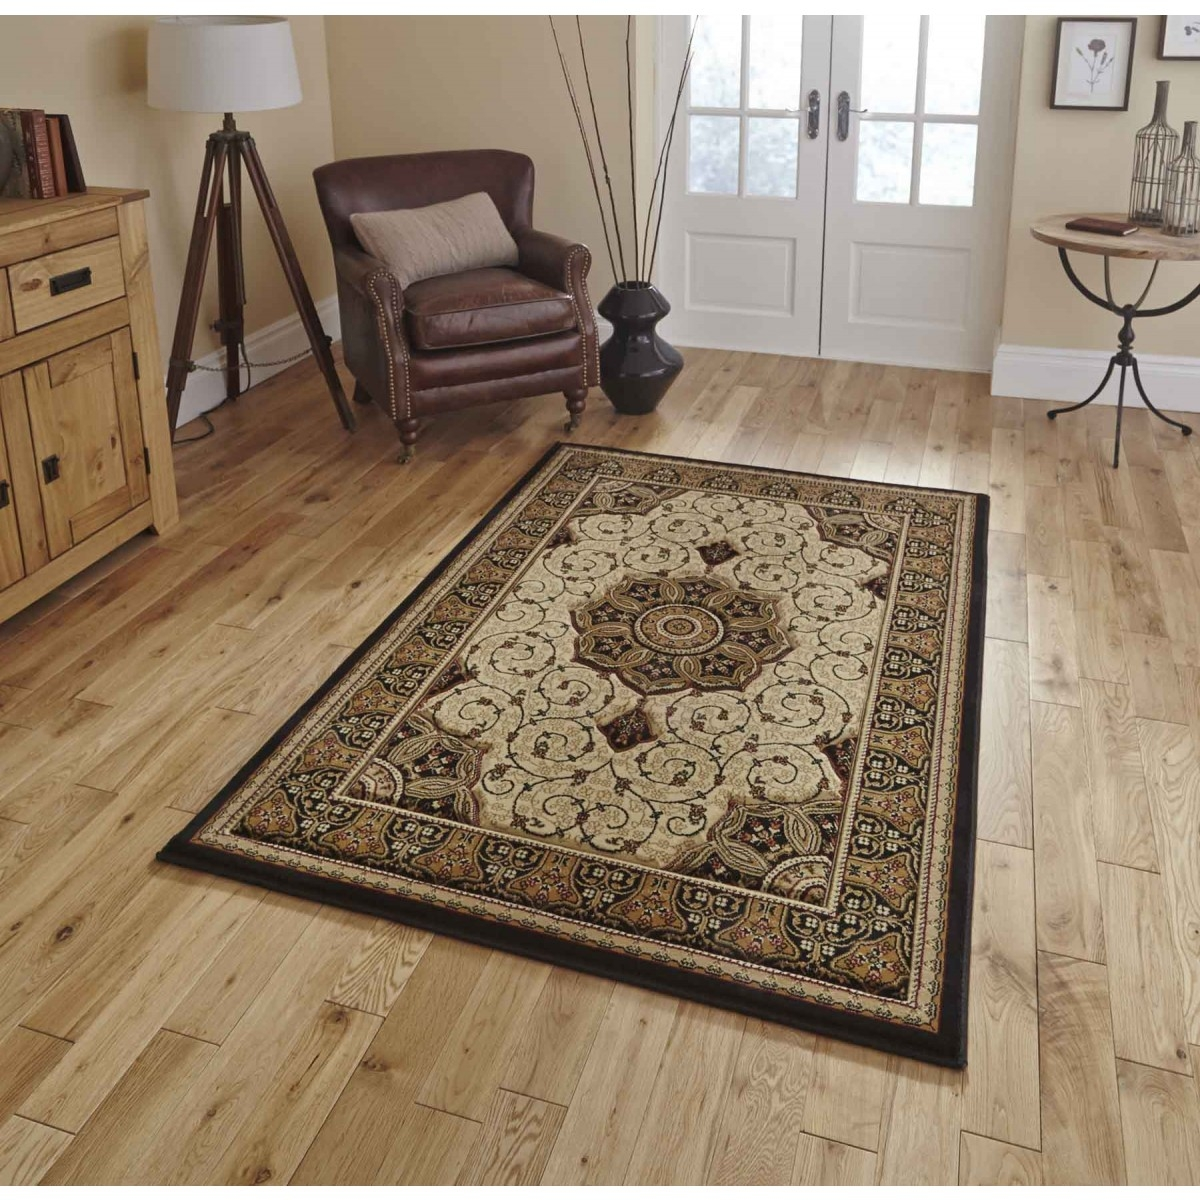 Buy Heritage 4400 Black Cream Traditional Rug Therugshopuk Intended For Cream And Black Carpets (Image 5 of 15)